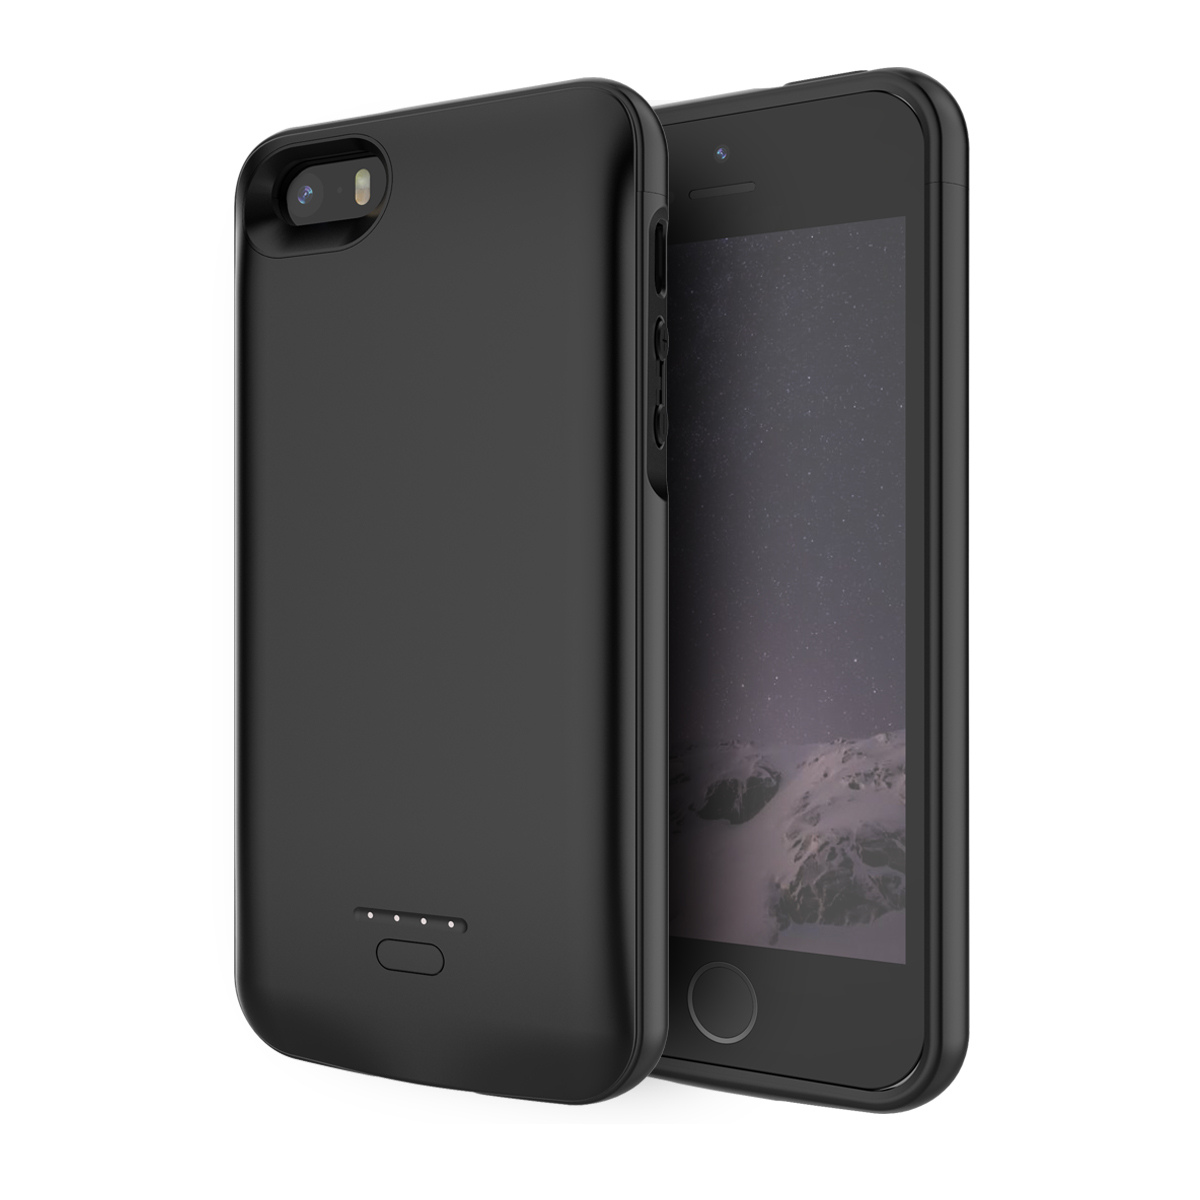 Battery Charger Case For Iphone Se 5se 5 5s <font><b>4000mah</b></font> <font><b>Power</b></font> <font><b>Bank</b></font> Charging Case Powerbank Charger Case For Iphone 6 6s 7 8 Case image